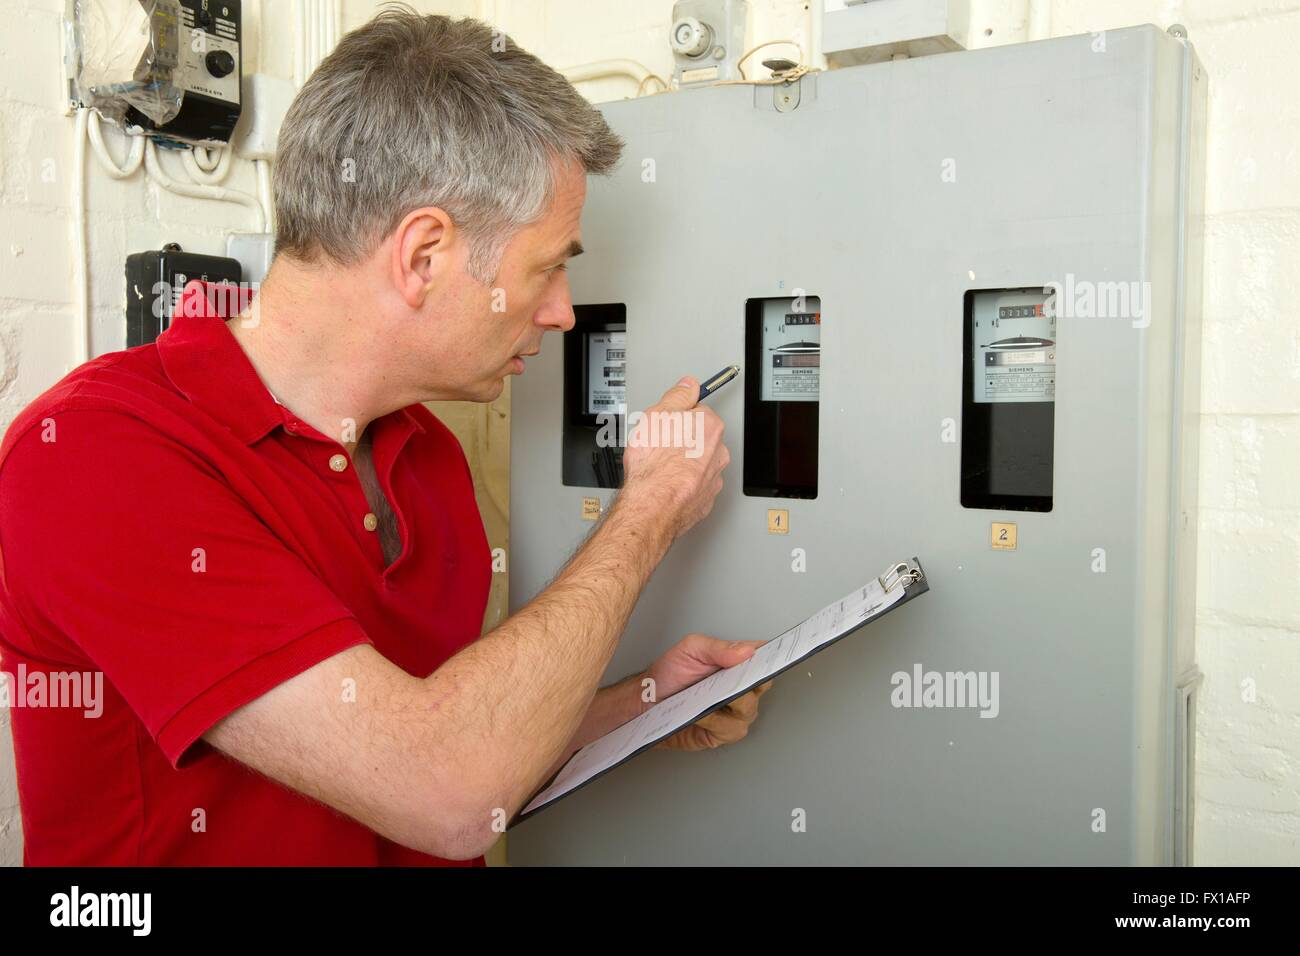 Man reads the power consumption - Stock Image